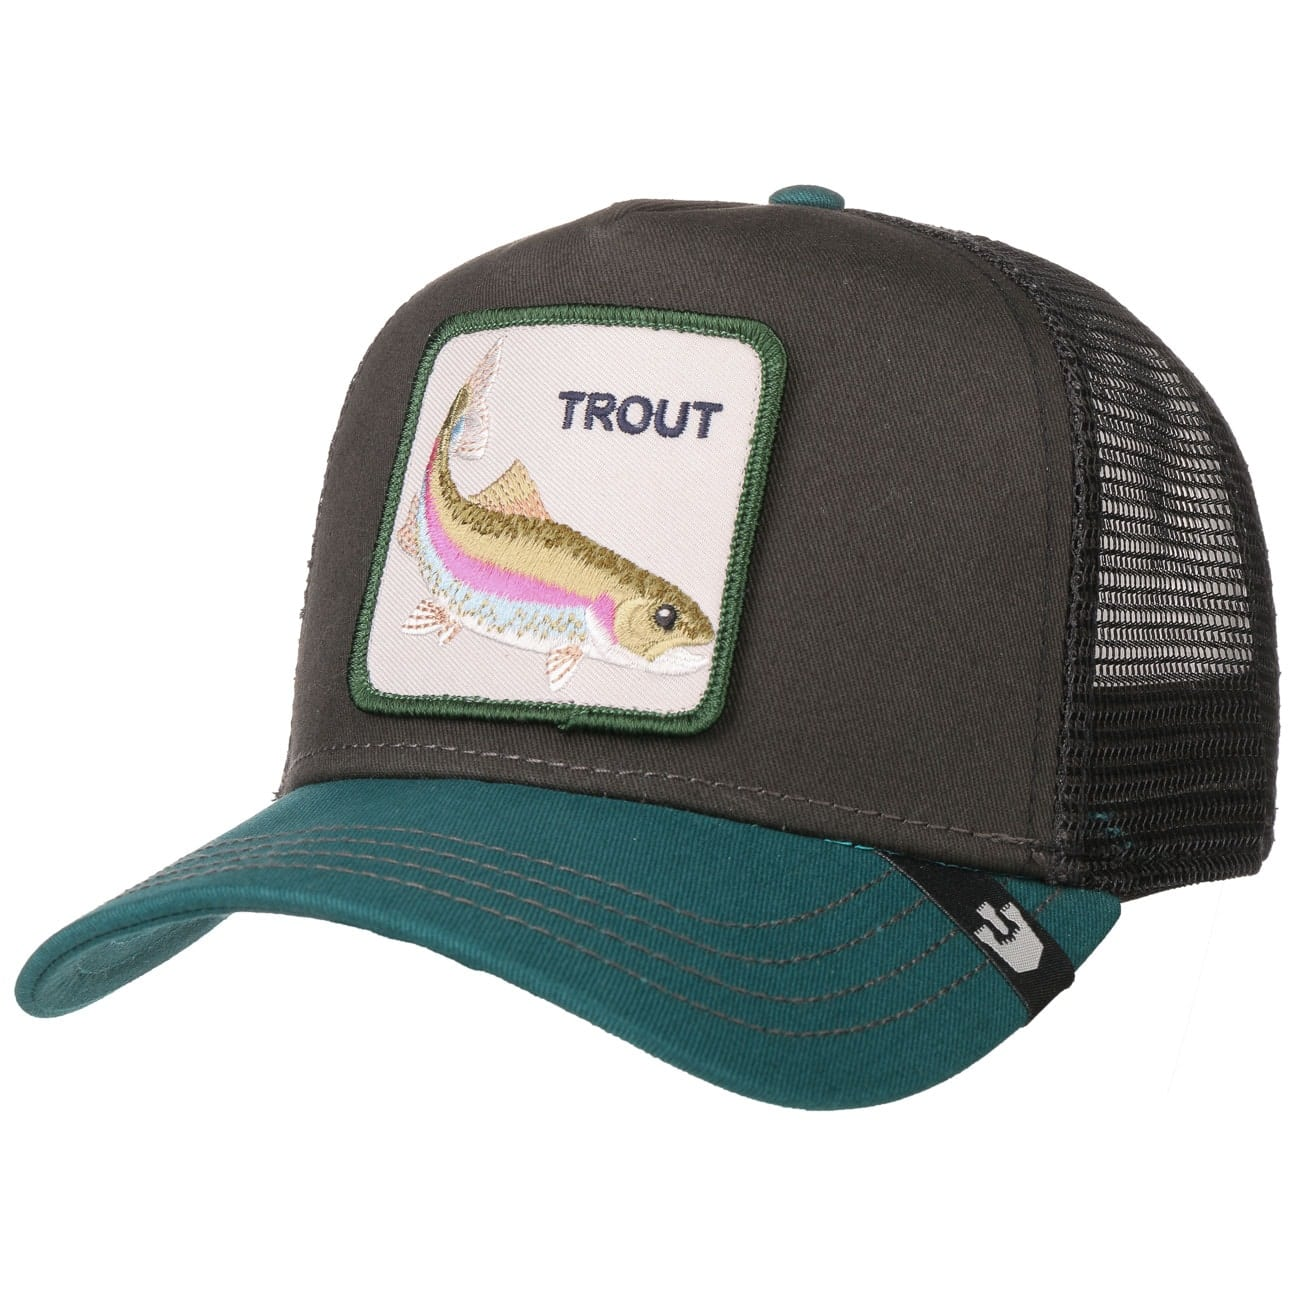 Gorra Trout Trucker by Goorin Bros.